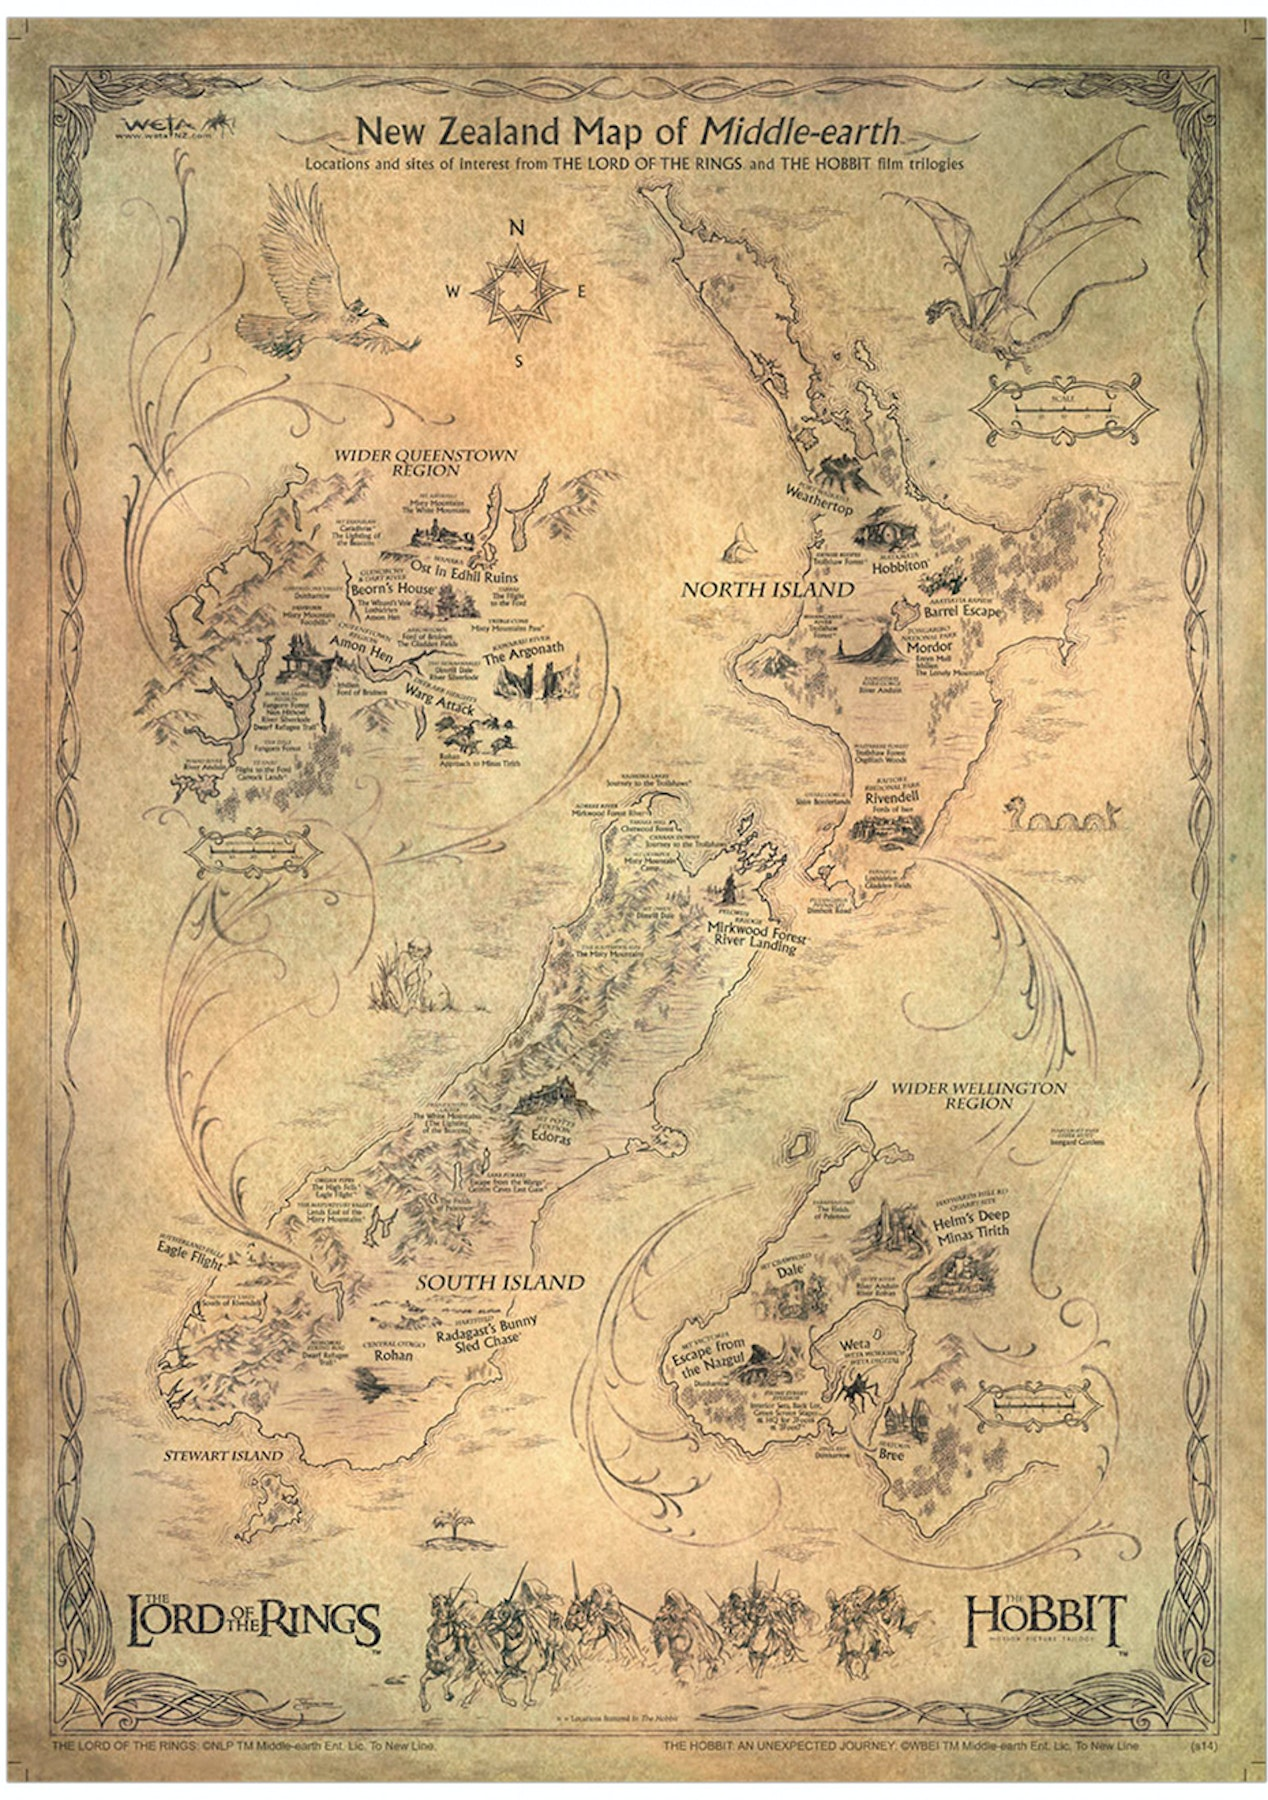 The Hobbit Art Print NZ Map of Middle Earth LOTR & Hobbit Locations